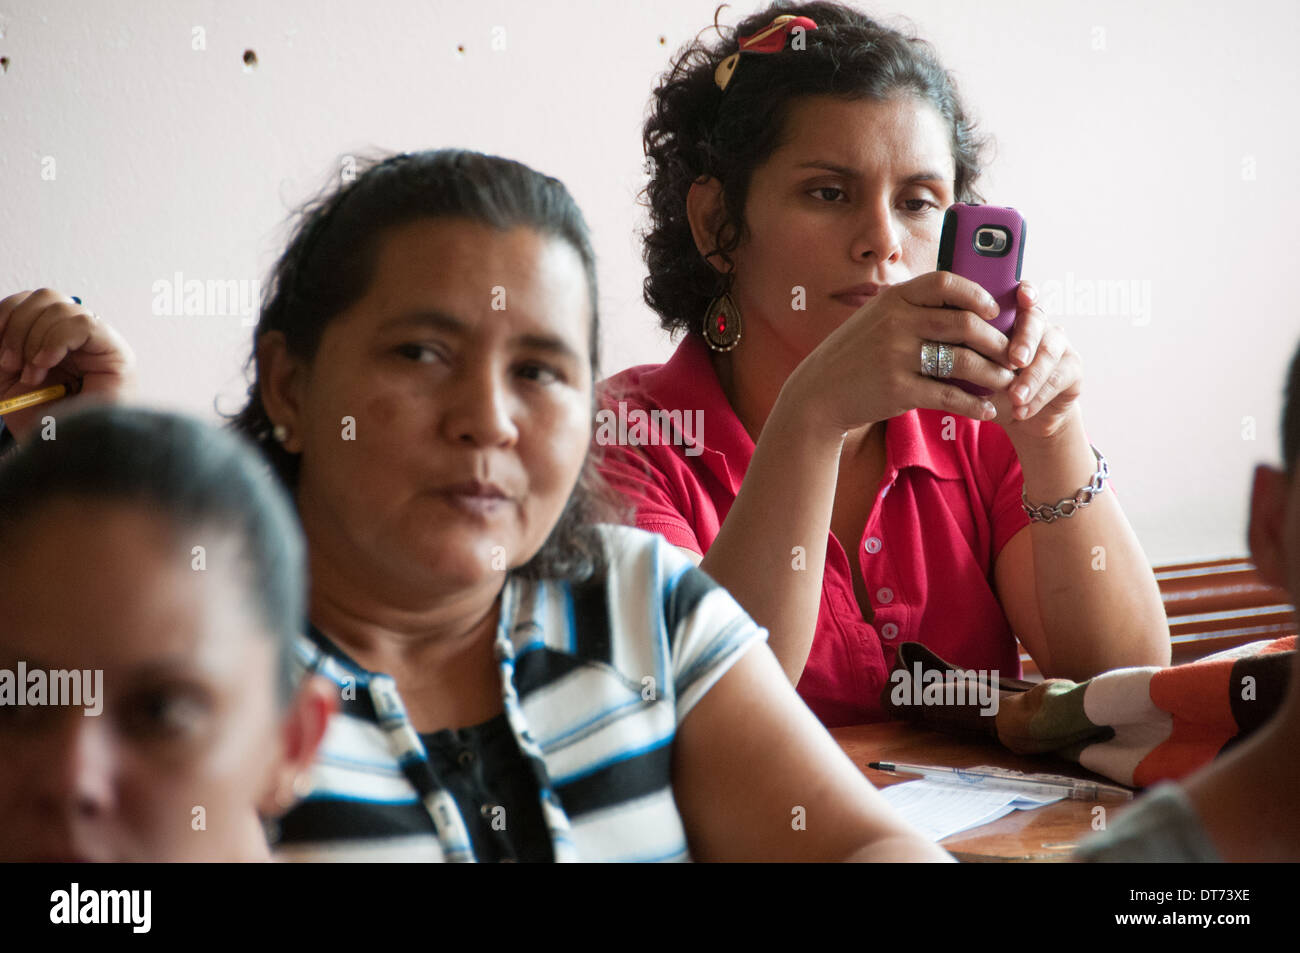 Costa Rican woman with mobile phone - Stock Image